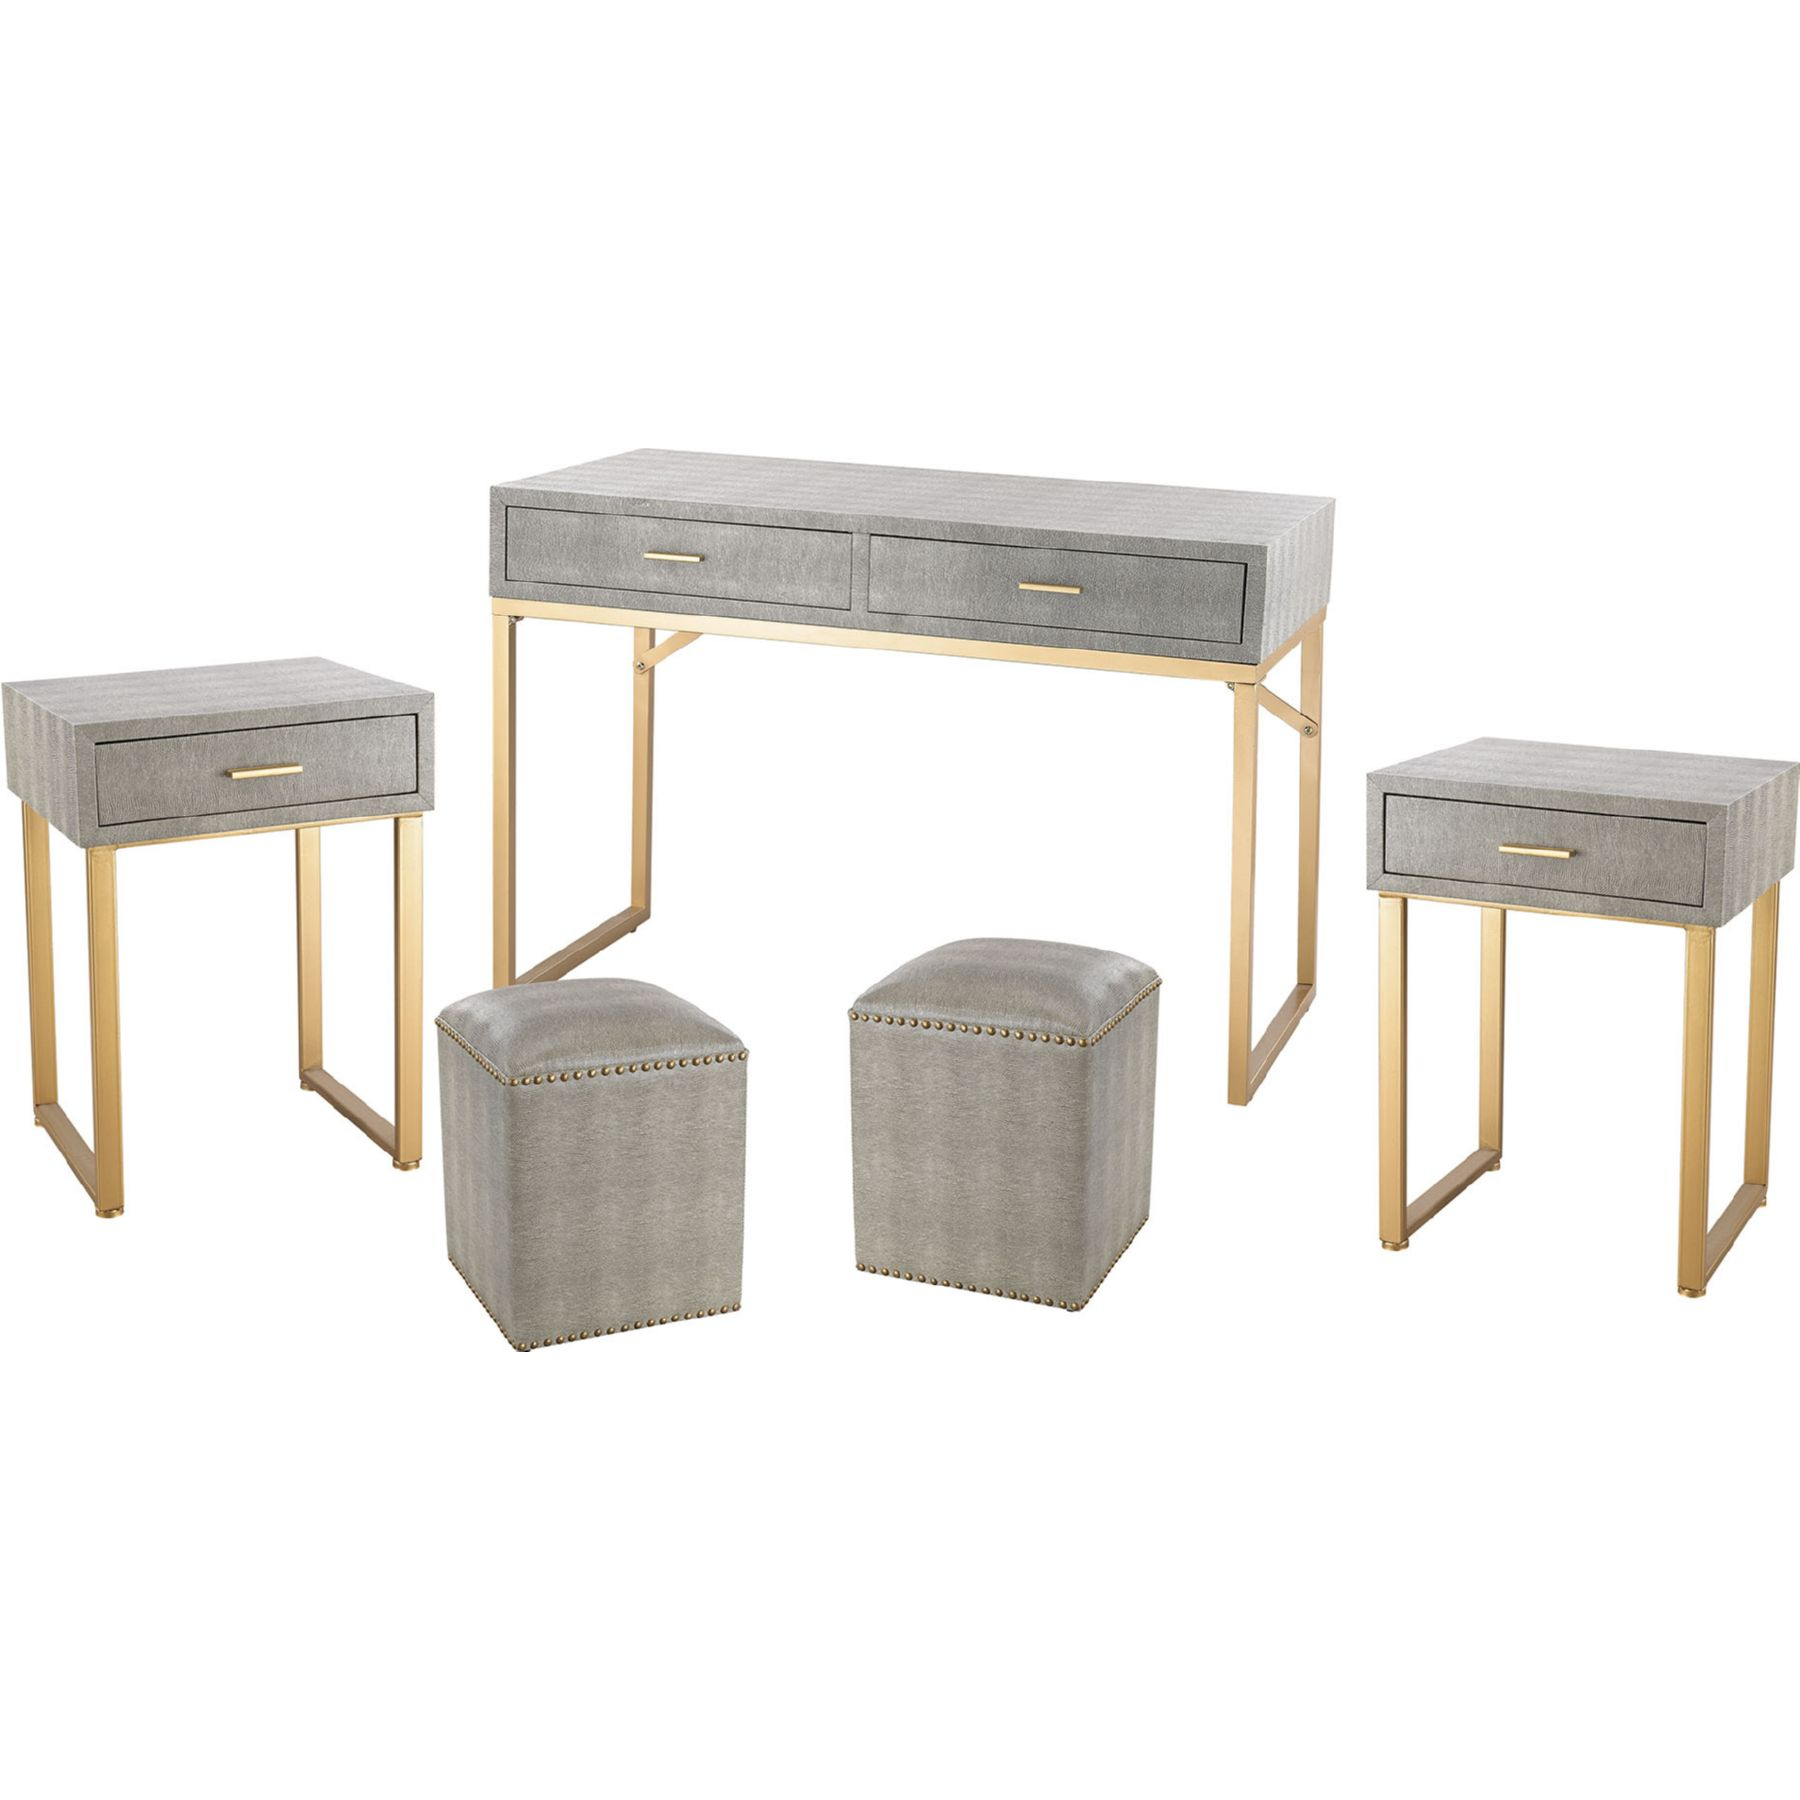 gold end table set droughtrelief accent sterling industries beaufort point piece tray office round counter height and chairs ikea coffee tables furniture feet timber trestle legs